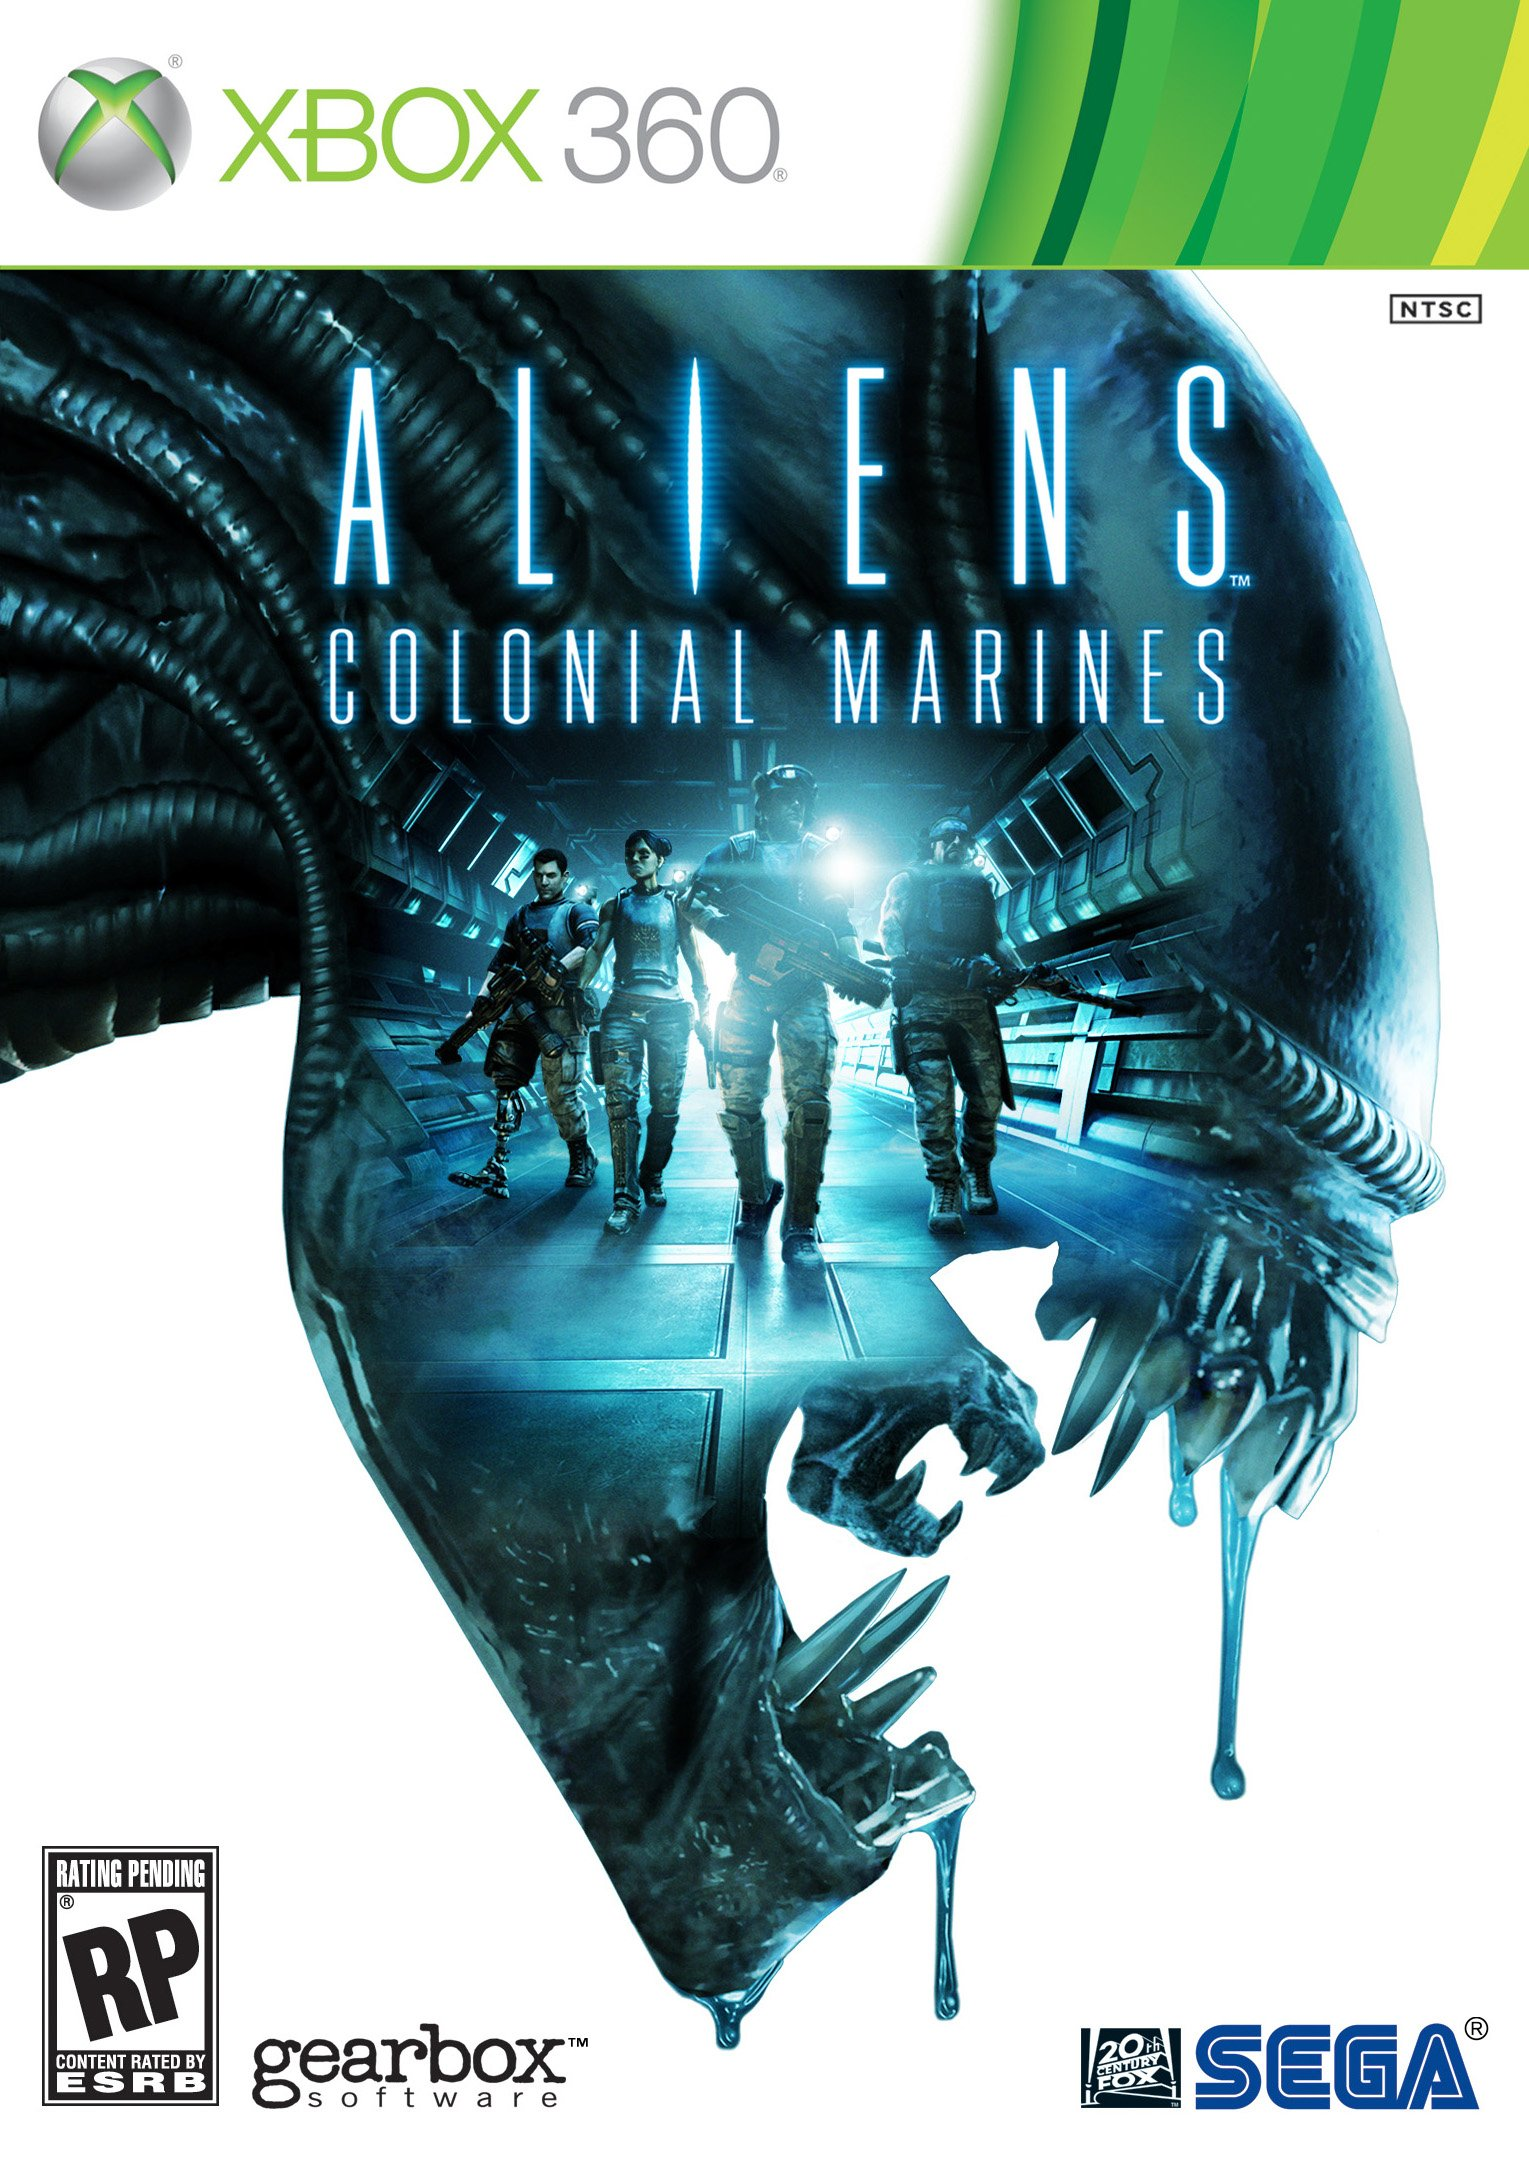 [XBOX360] Aliens: Colonial Marines (2013) - FULL ITA